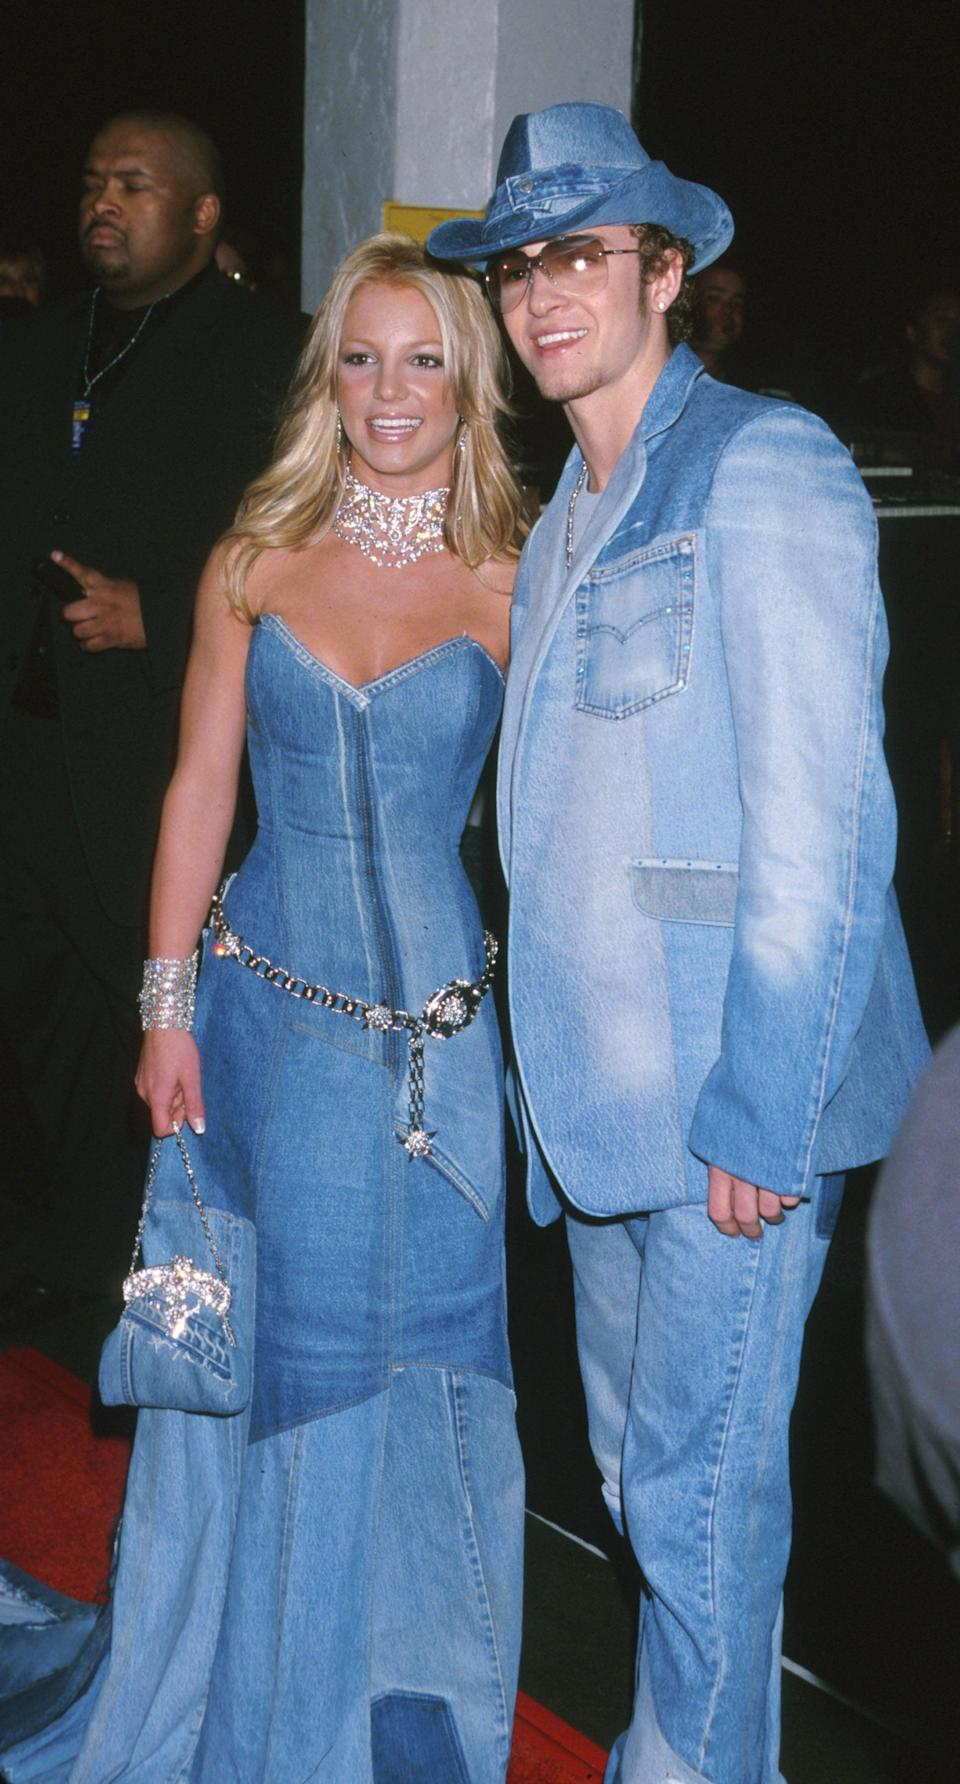 <p>If there's a defining image of the couple's relationship, it's this: their matching, head-to-toe denim outfits at the 2001 American Music Awards.</p>